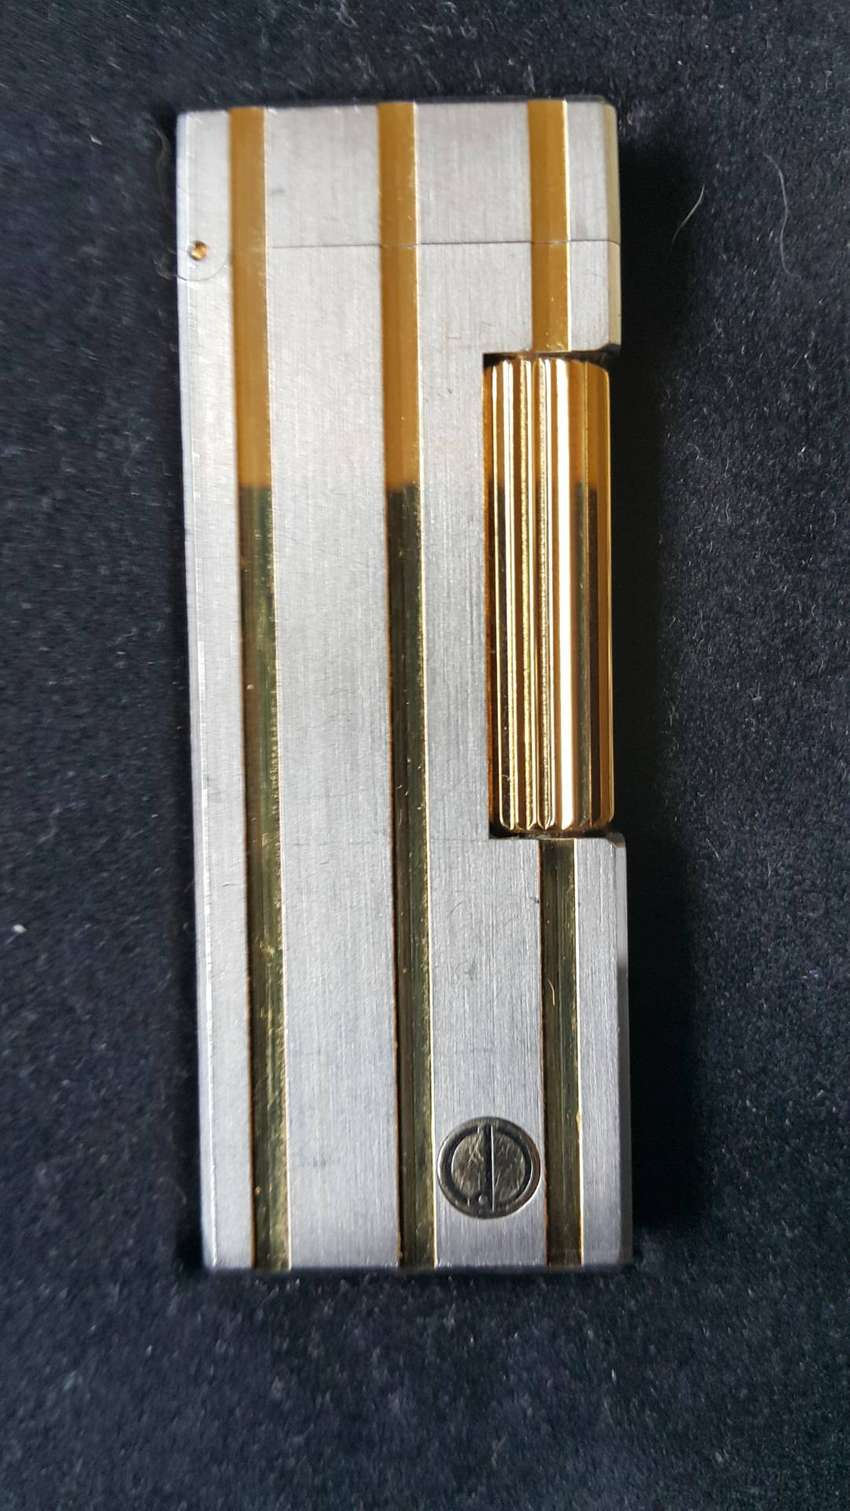 Dunhill Rollagas lighter (Silver & Gold) 0